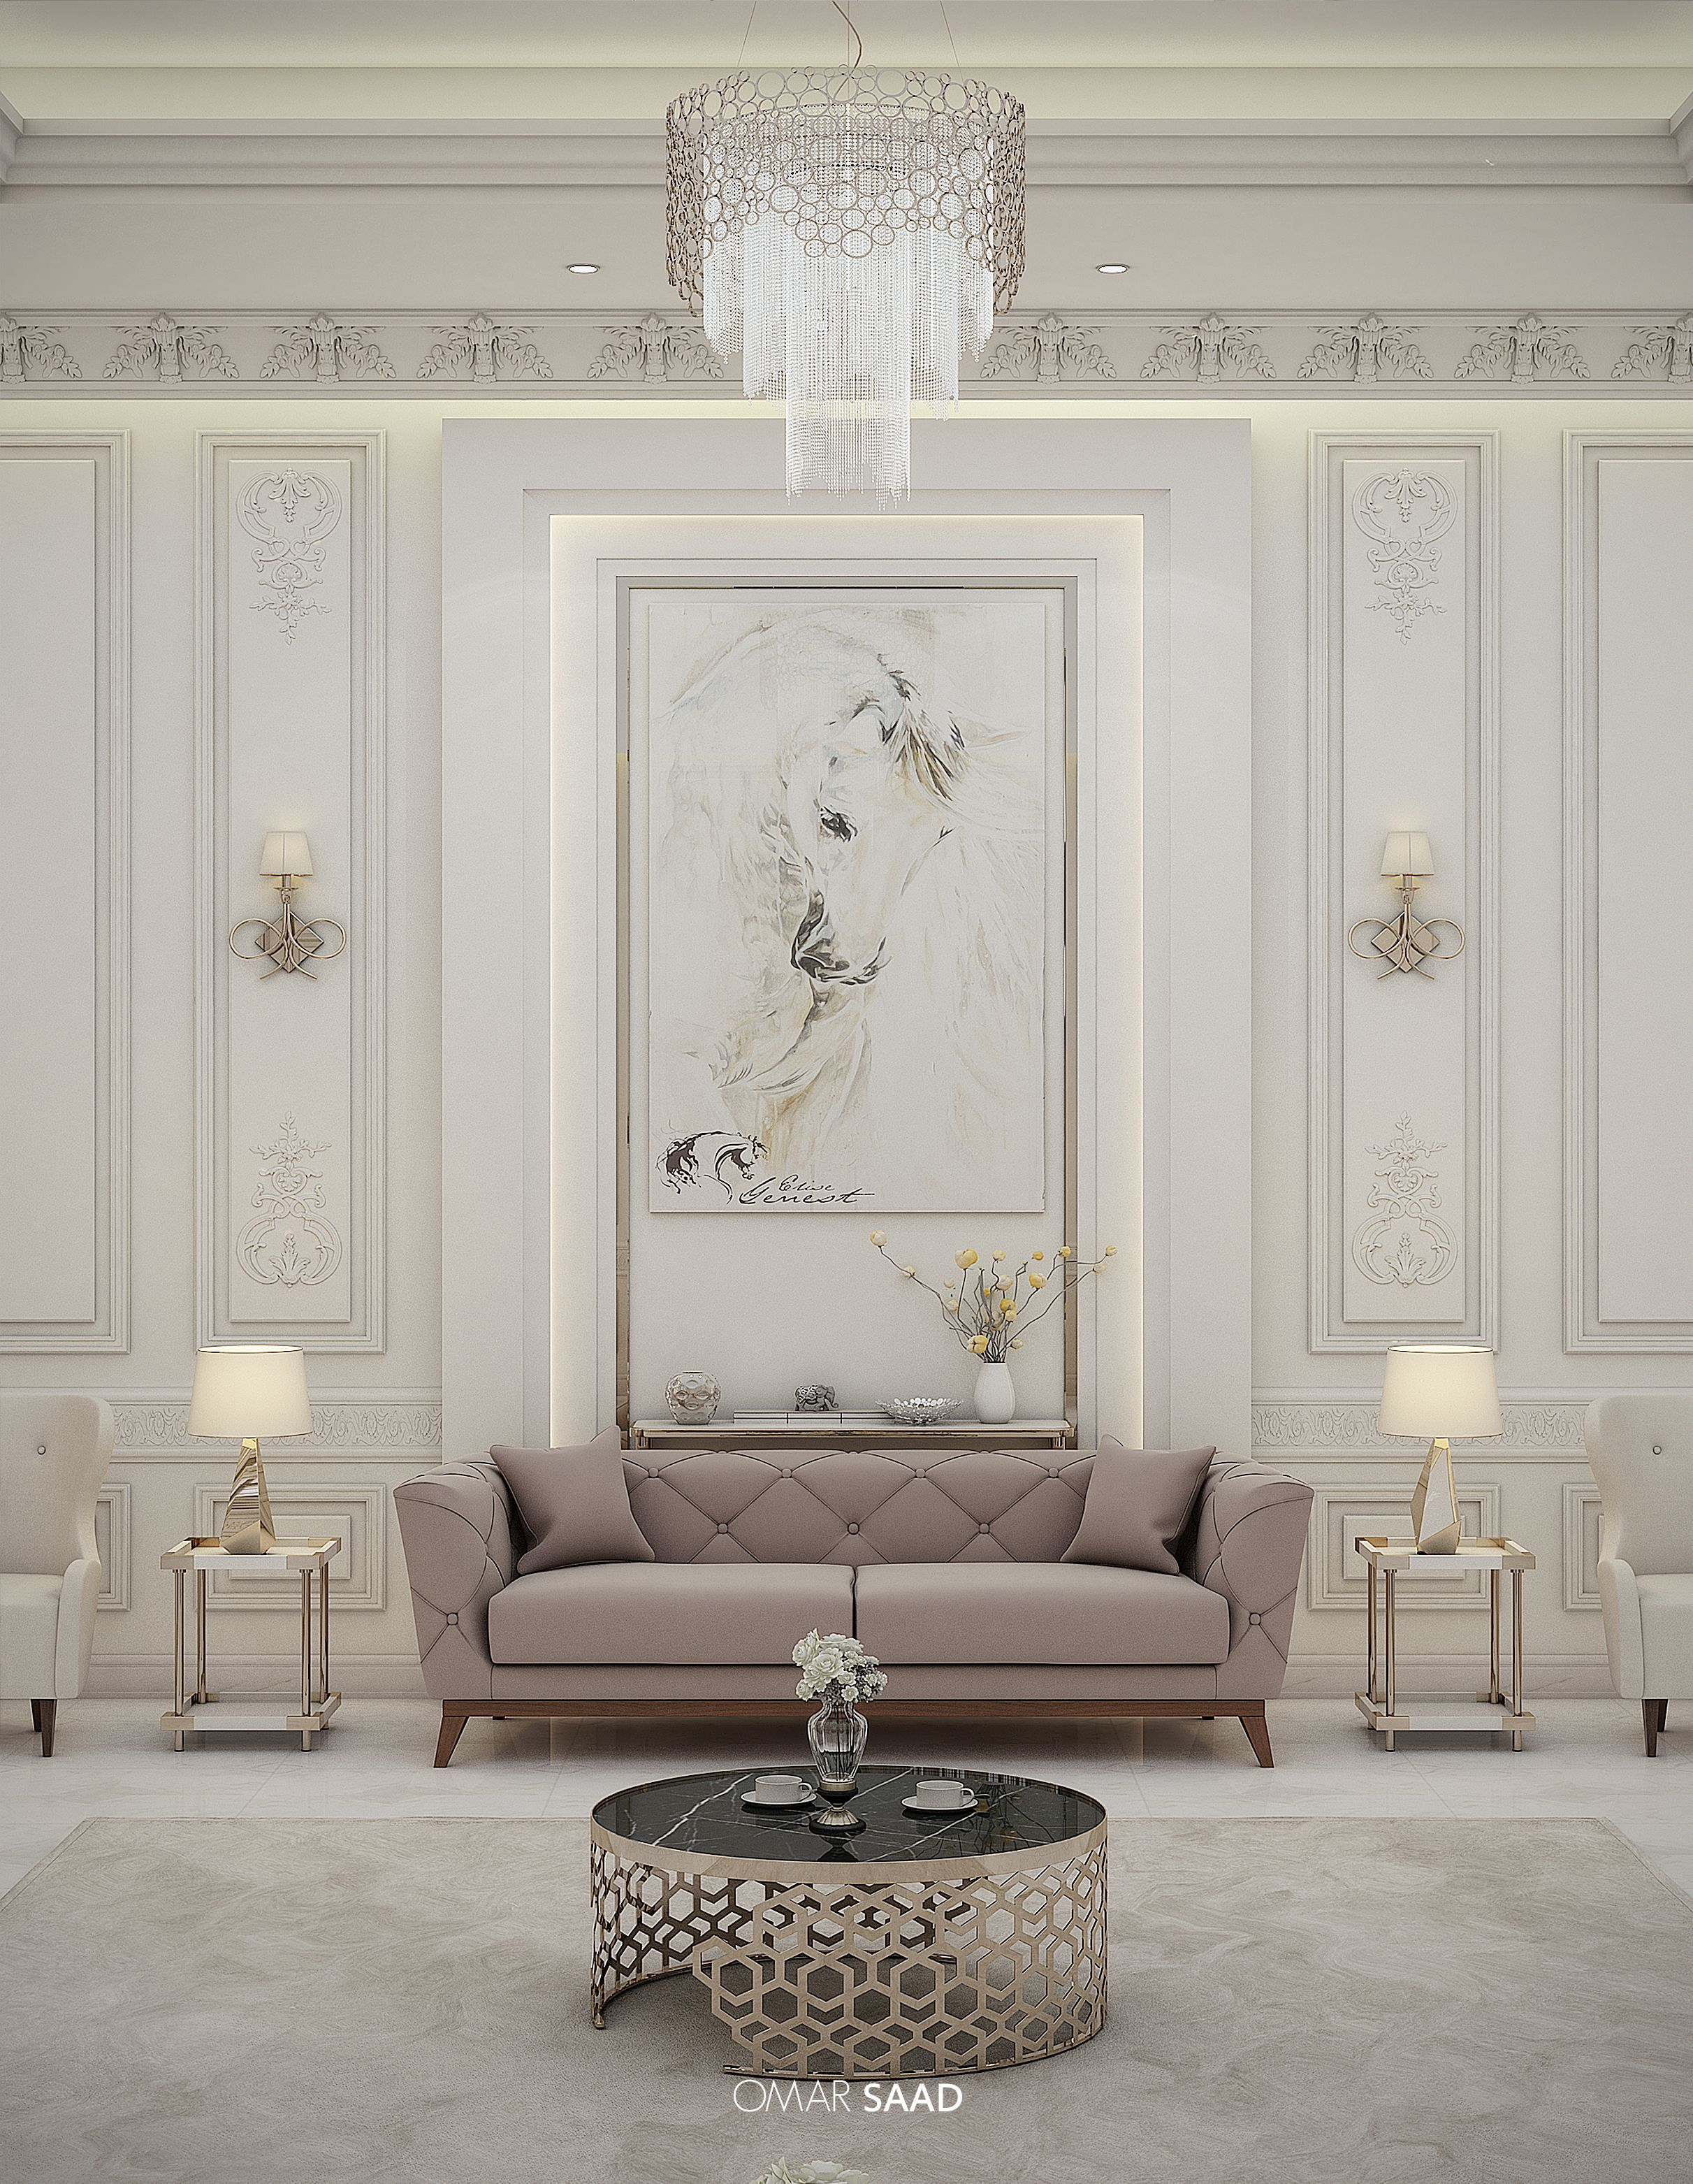 Room Design Interior: LUXURY CLASSIC VILLA